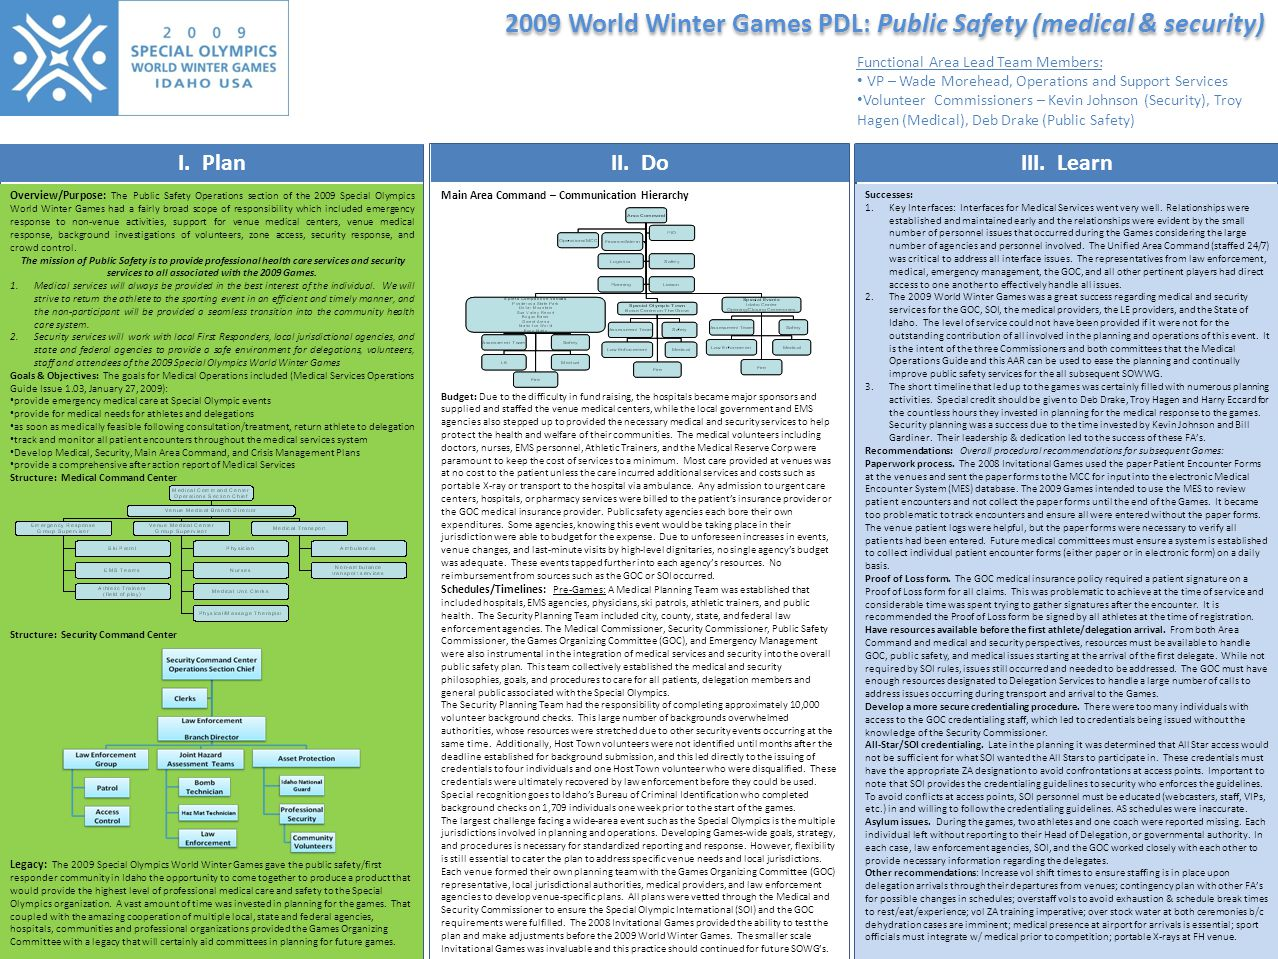 2009 World Winter Games PDL: Public Safety (medical & security) I.